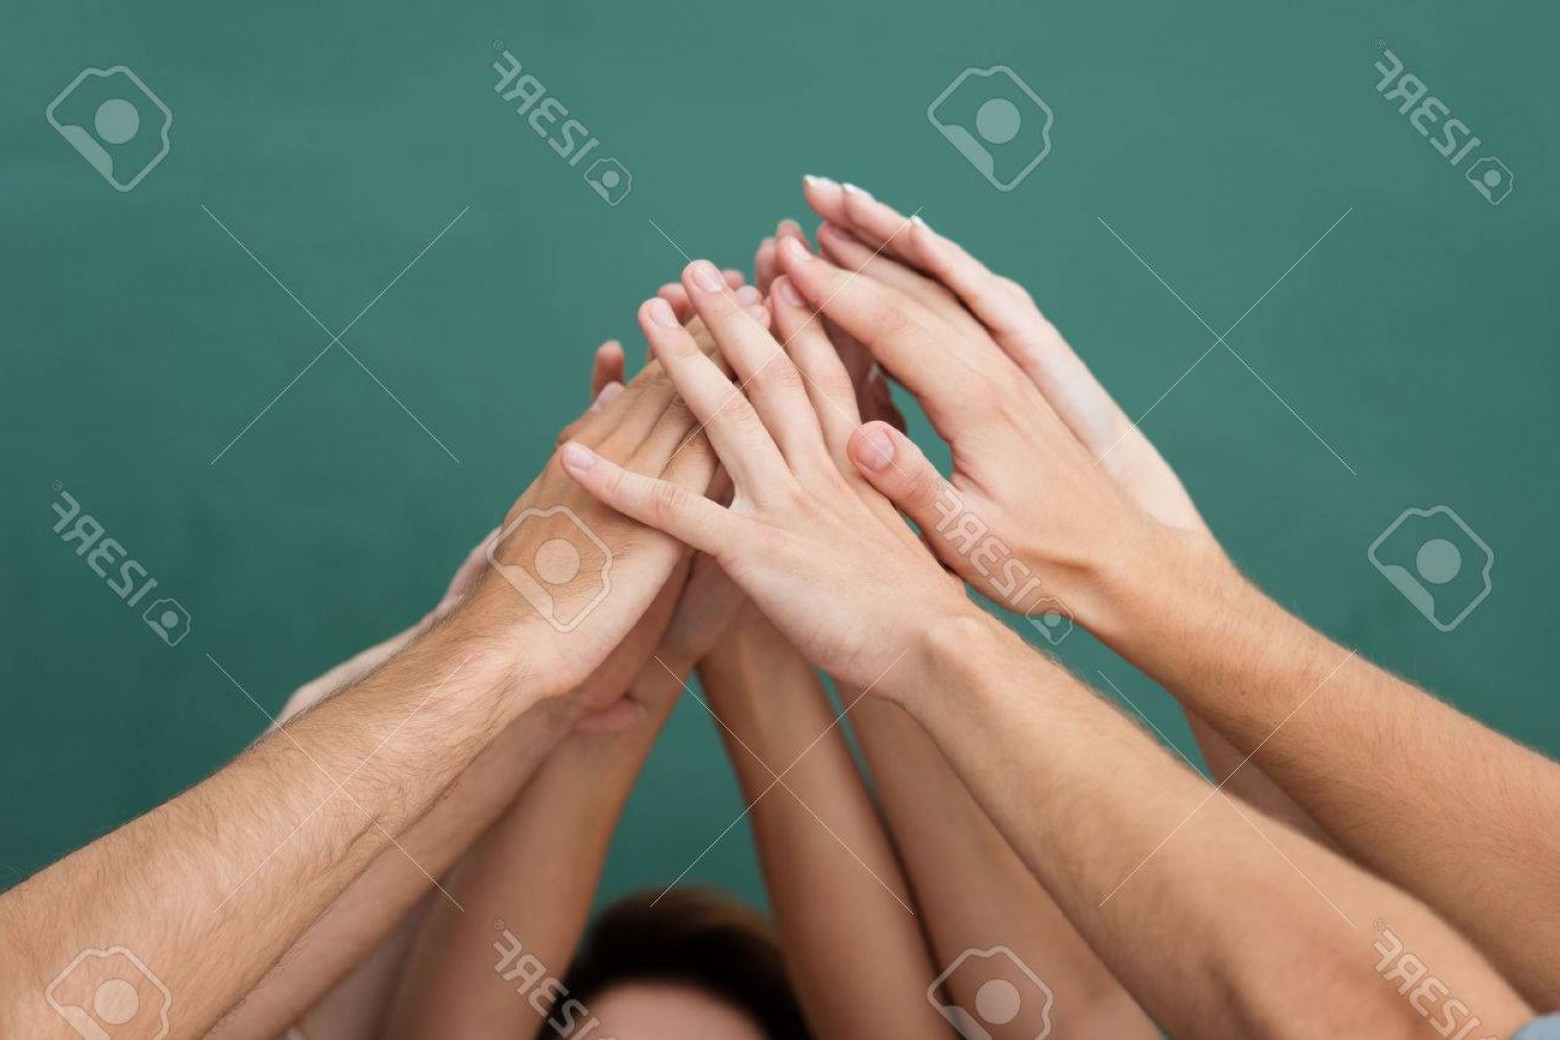 Vector Group Of Hands Overlapped: Phototeamwork And Cooperation With A Group Of Young People All Raising Their Hands Together And Forming A